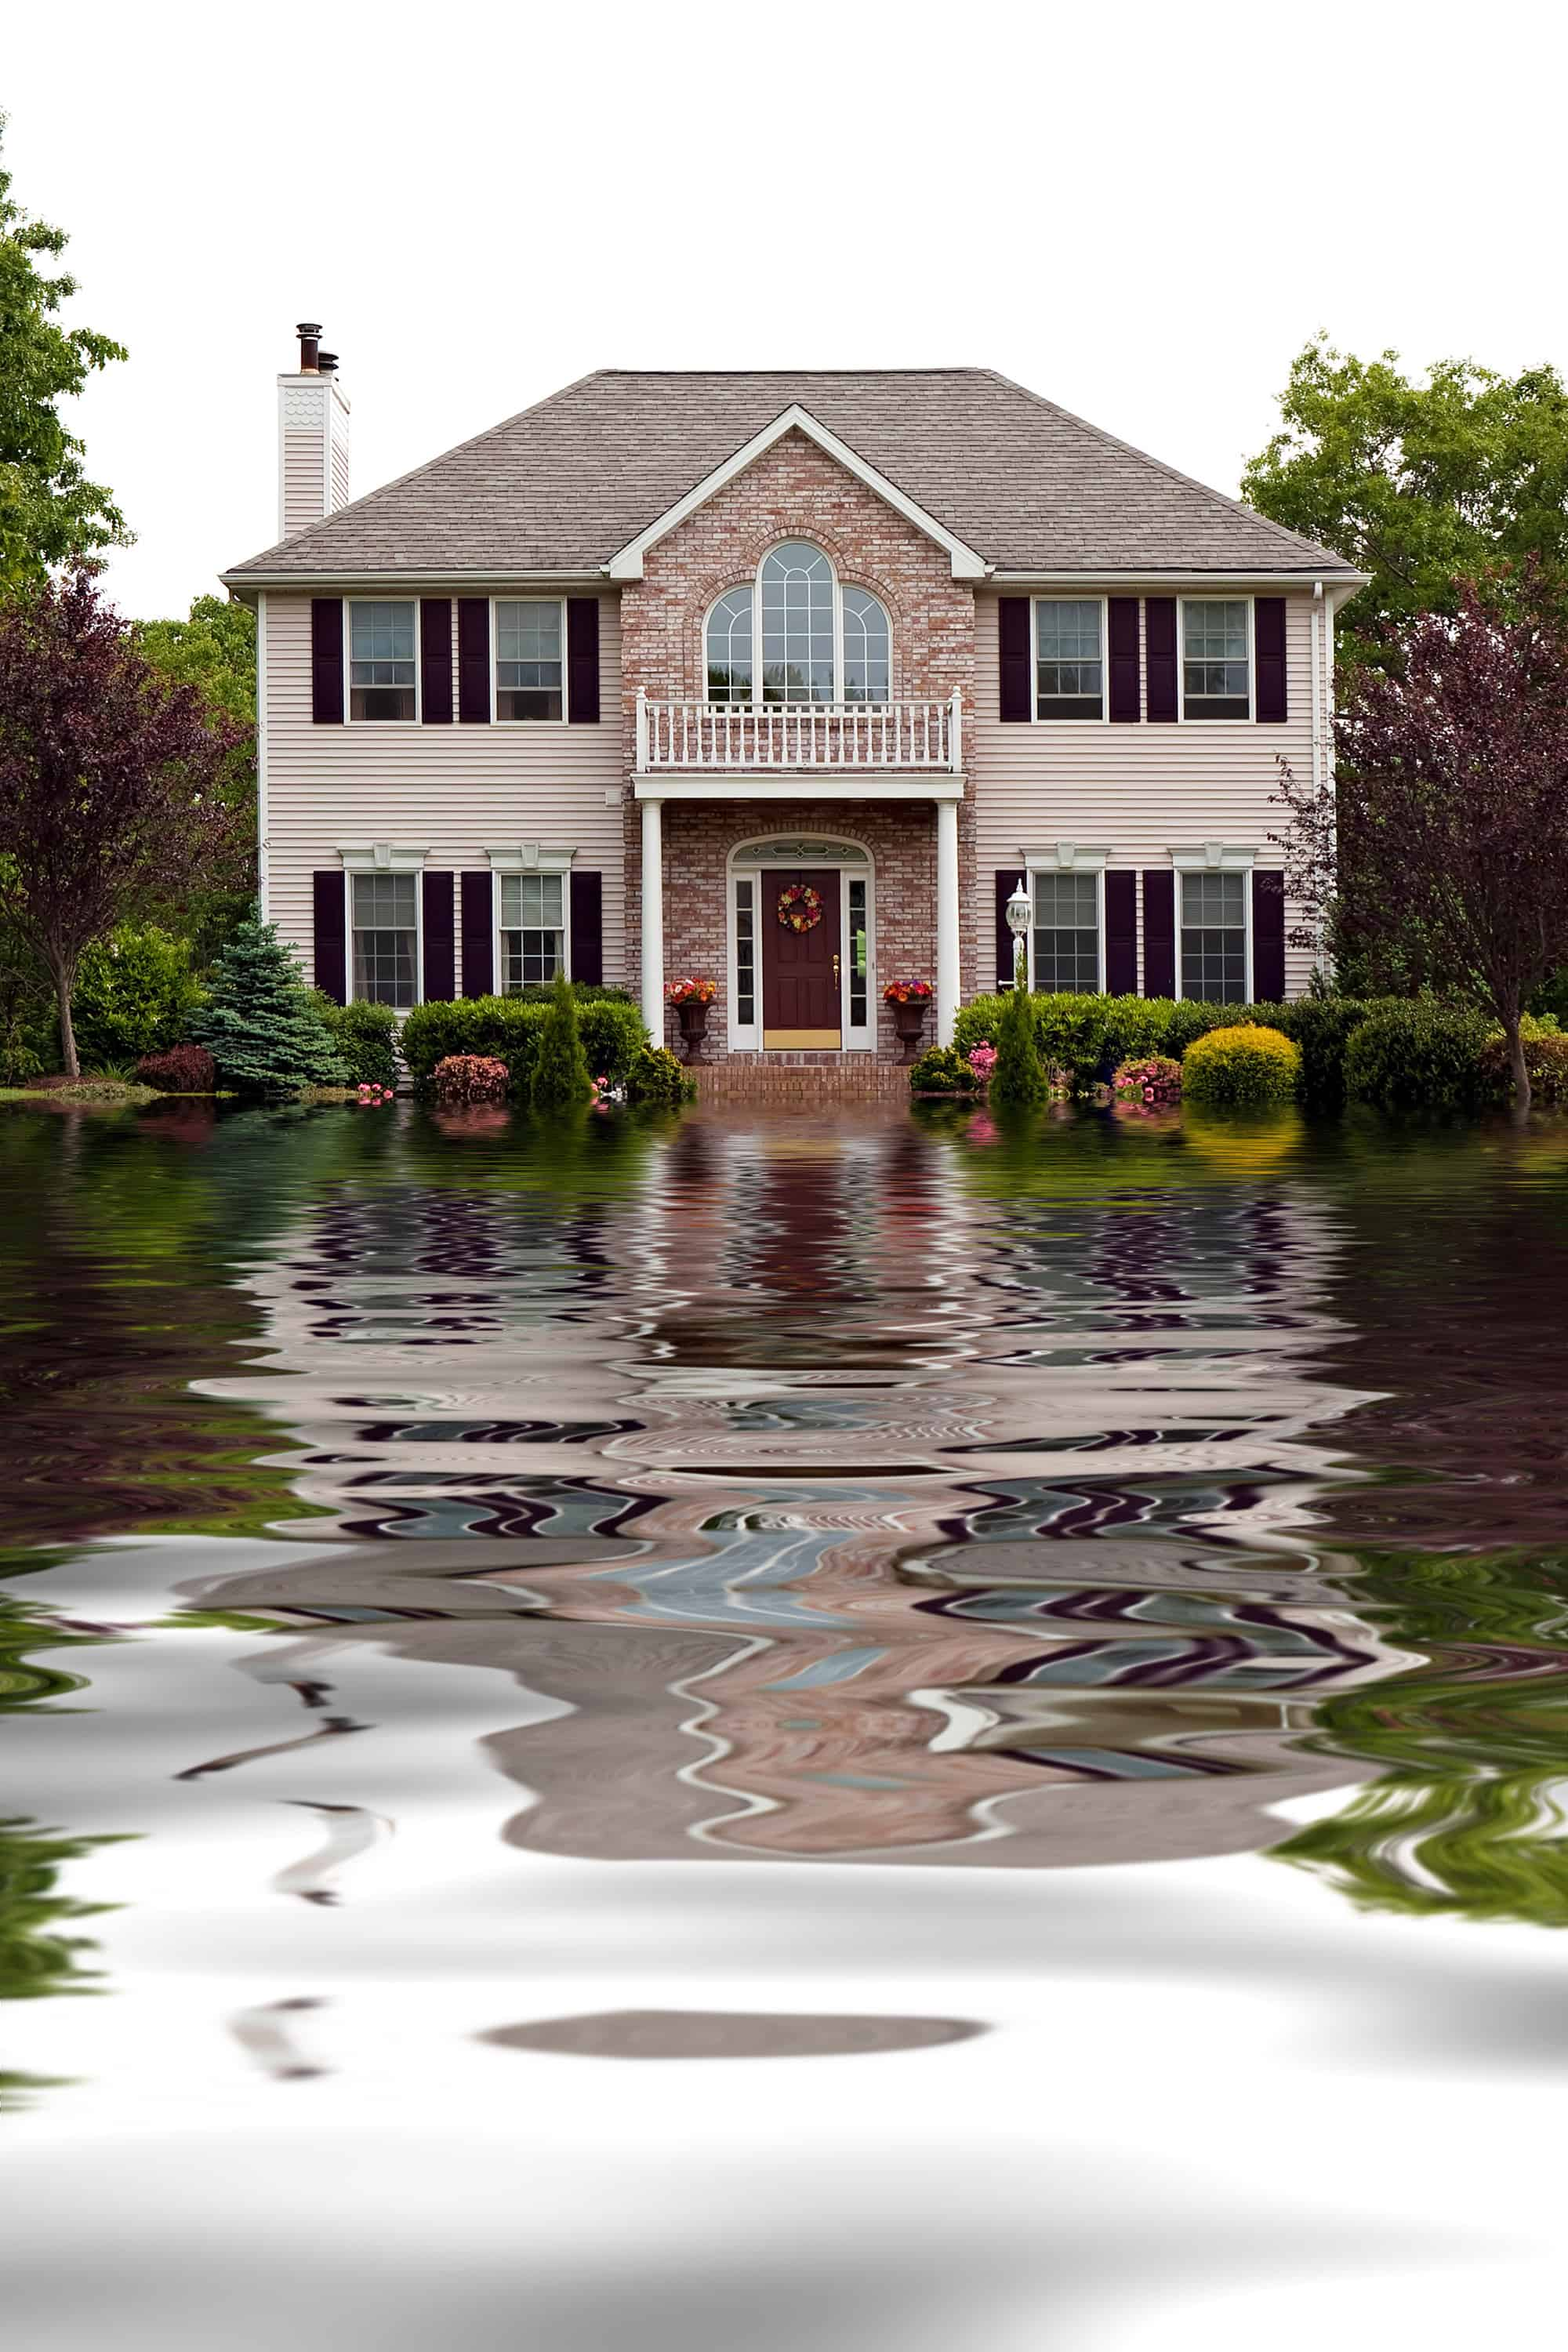 Rising Waters: How to Protect Your Home After a Flood